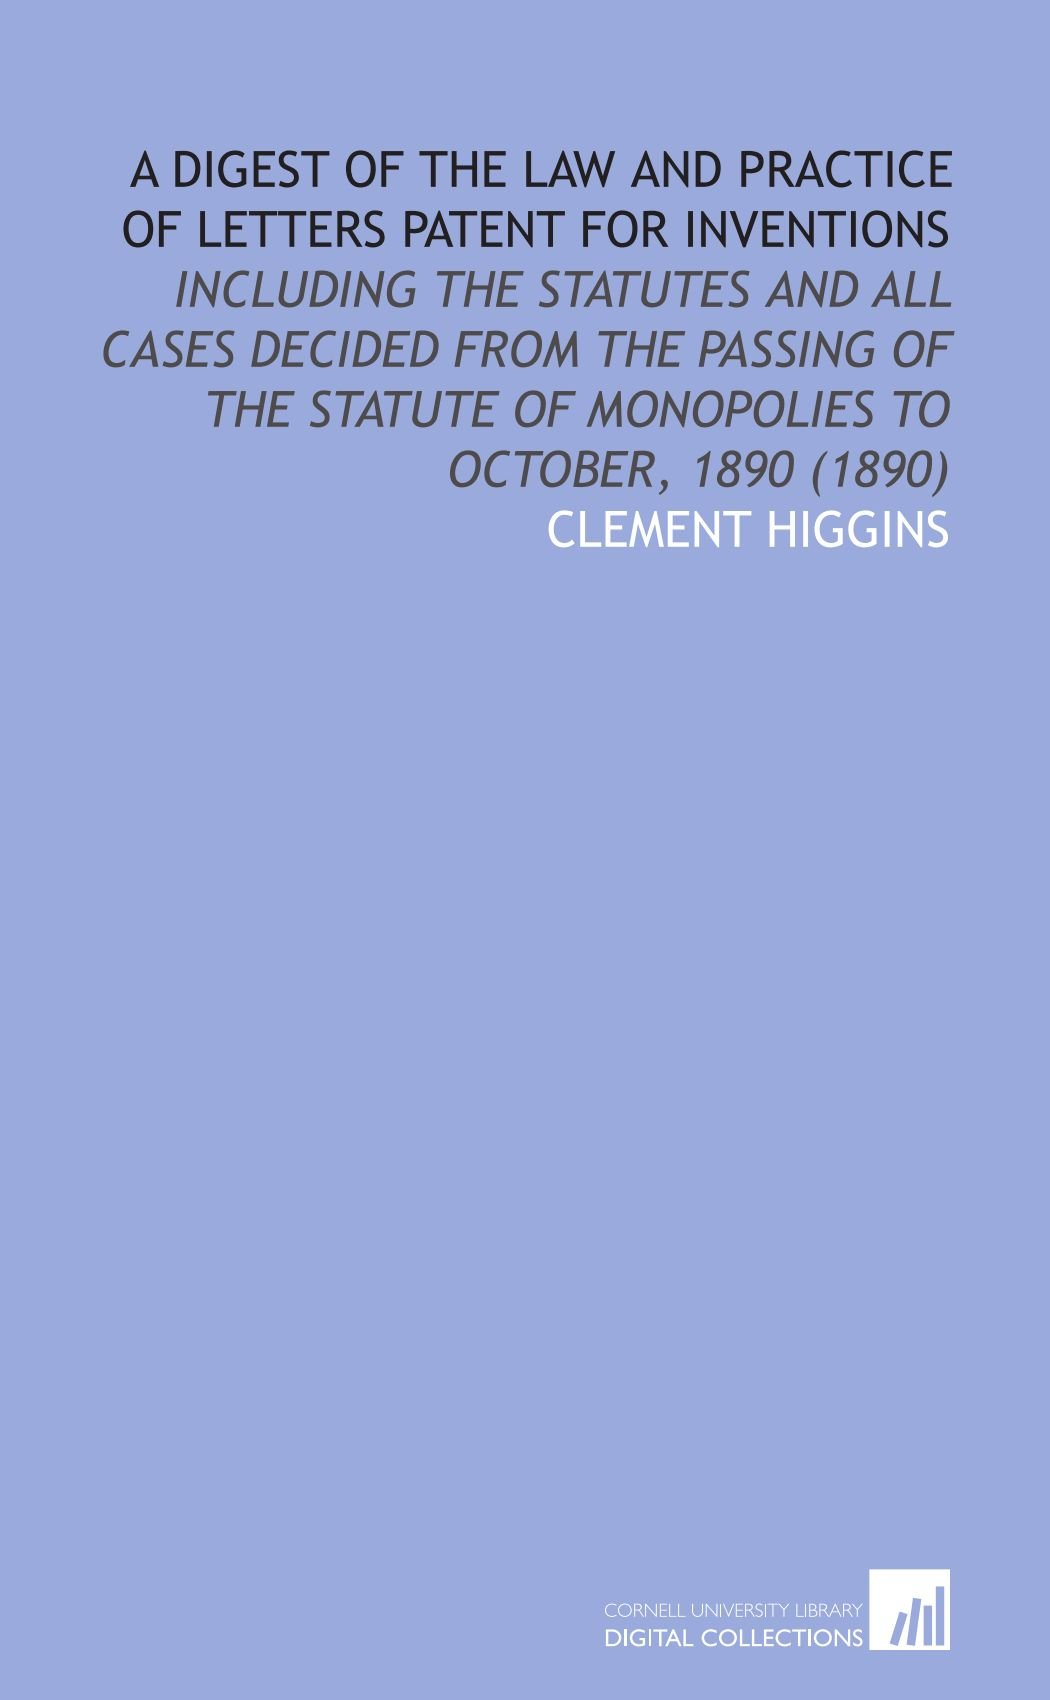 Download A Digest of the Law and Practice of Letters Patent for Inventions: Including the Statutes and All Cases Decided From the Passing of the Statute of Monopolies to October, 1890 (1890) PDF